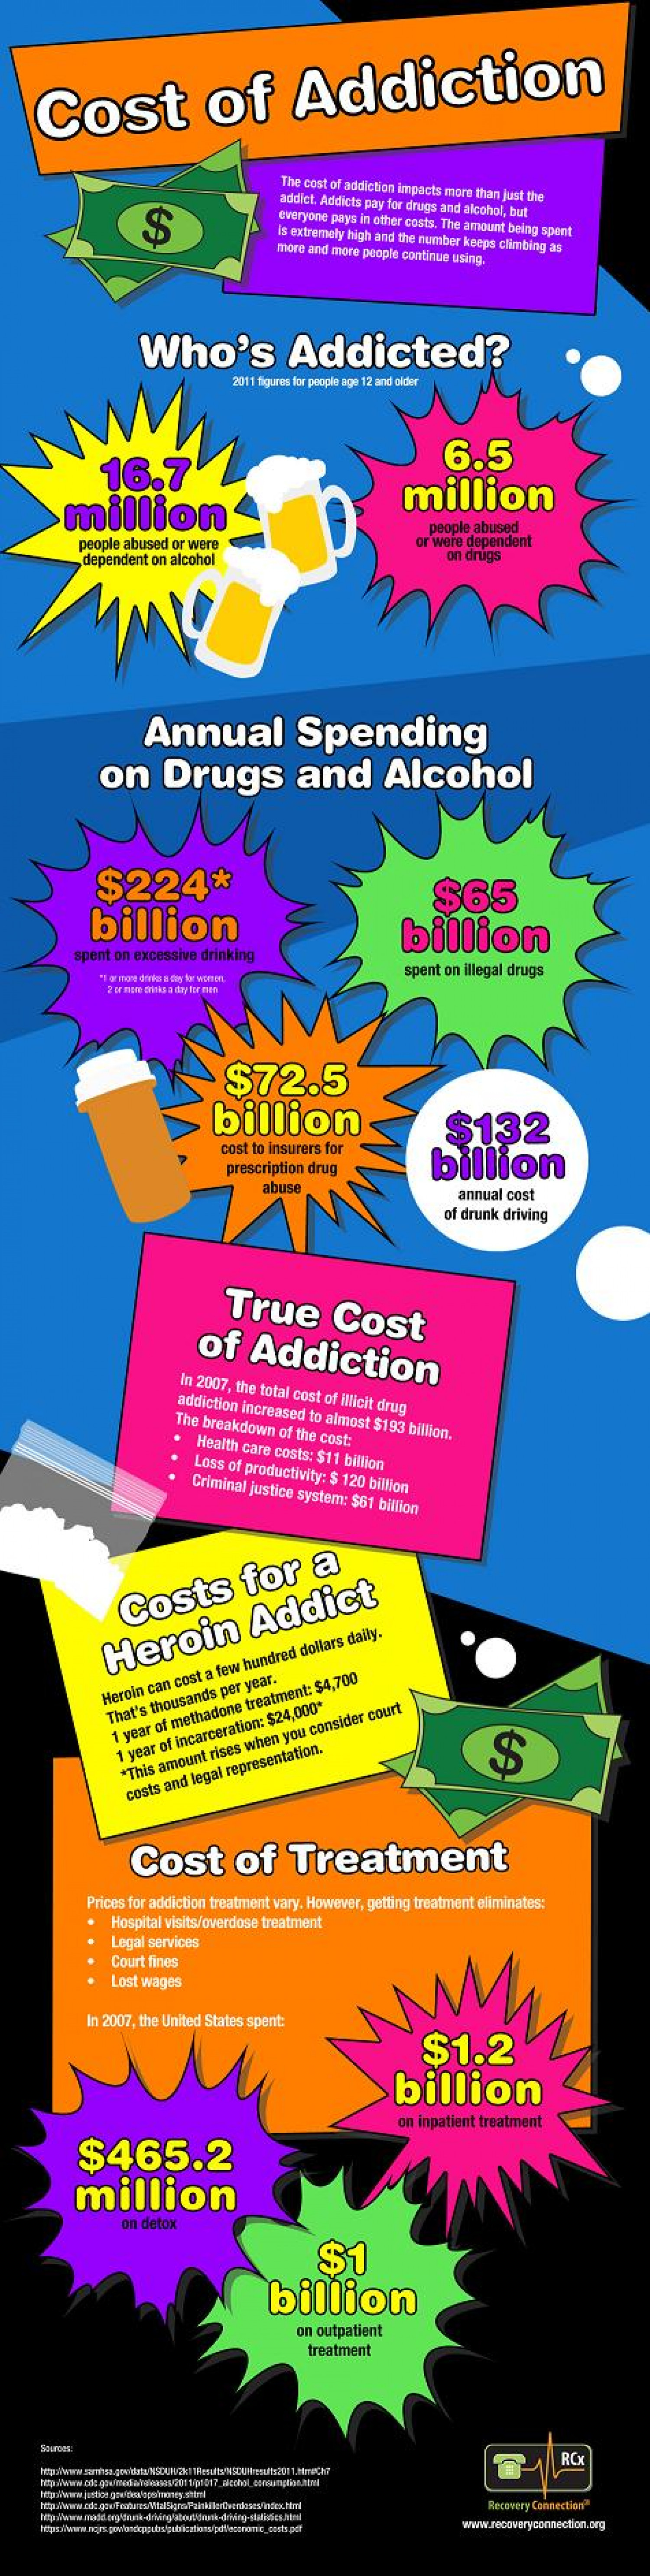 Cost of Addiction and Drug Abuse Infographic